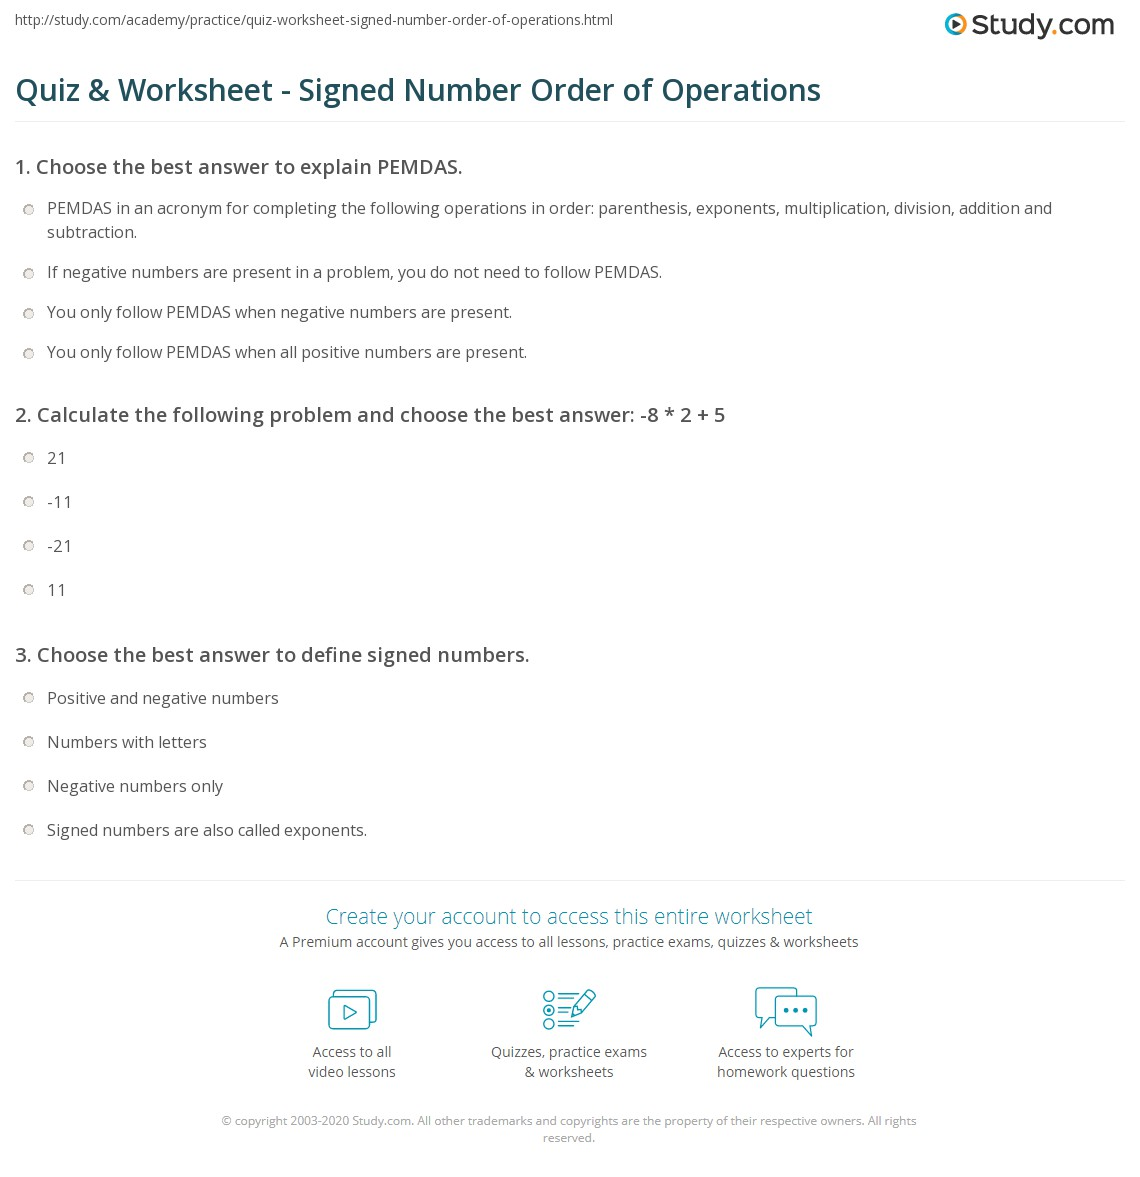 worksheet Pemdas Practice Problems quiz worksheet signed number order of operations study com calculate the following problem and choose best answer 8 2 5